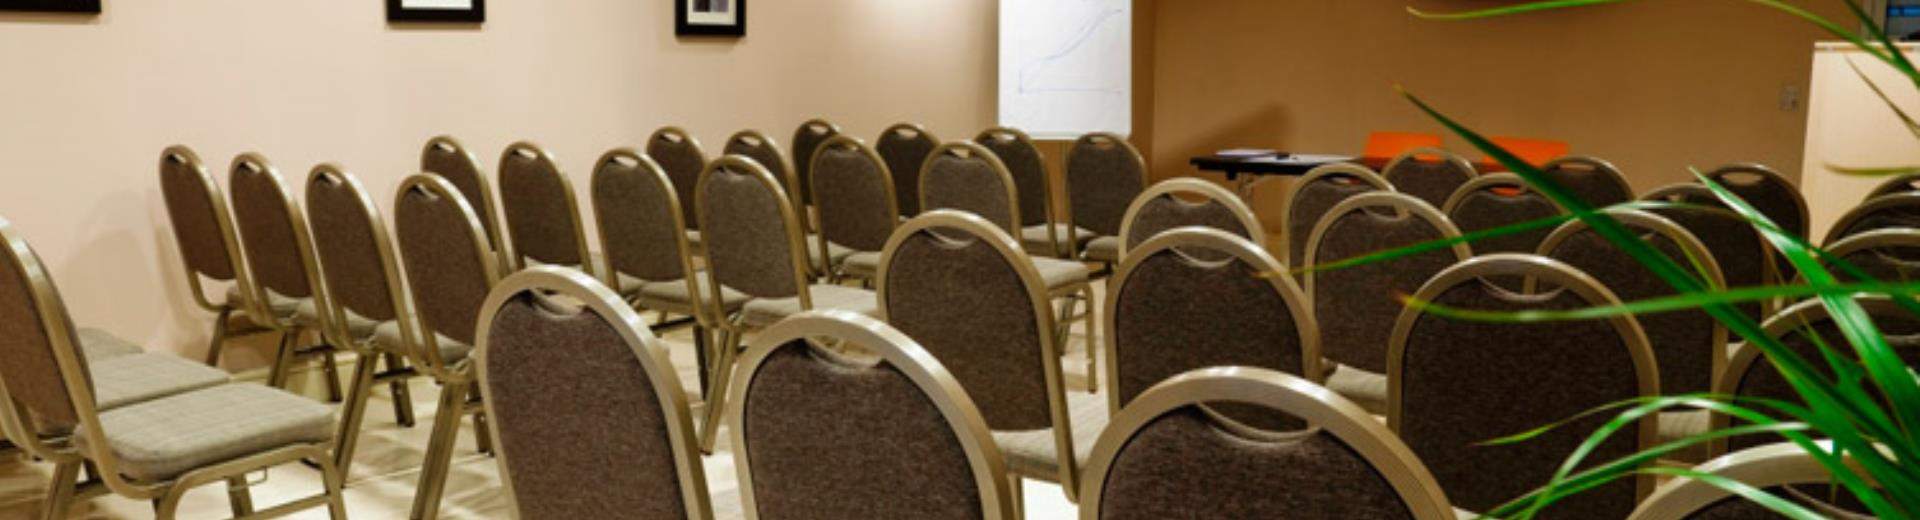 Discover the conference rooms in the Best Western Premier Villa Fabiano Palace Hotel and organize your events in Cosenza - Rende